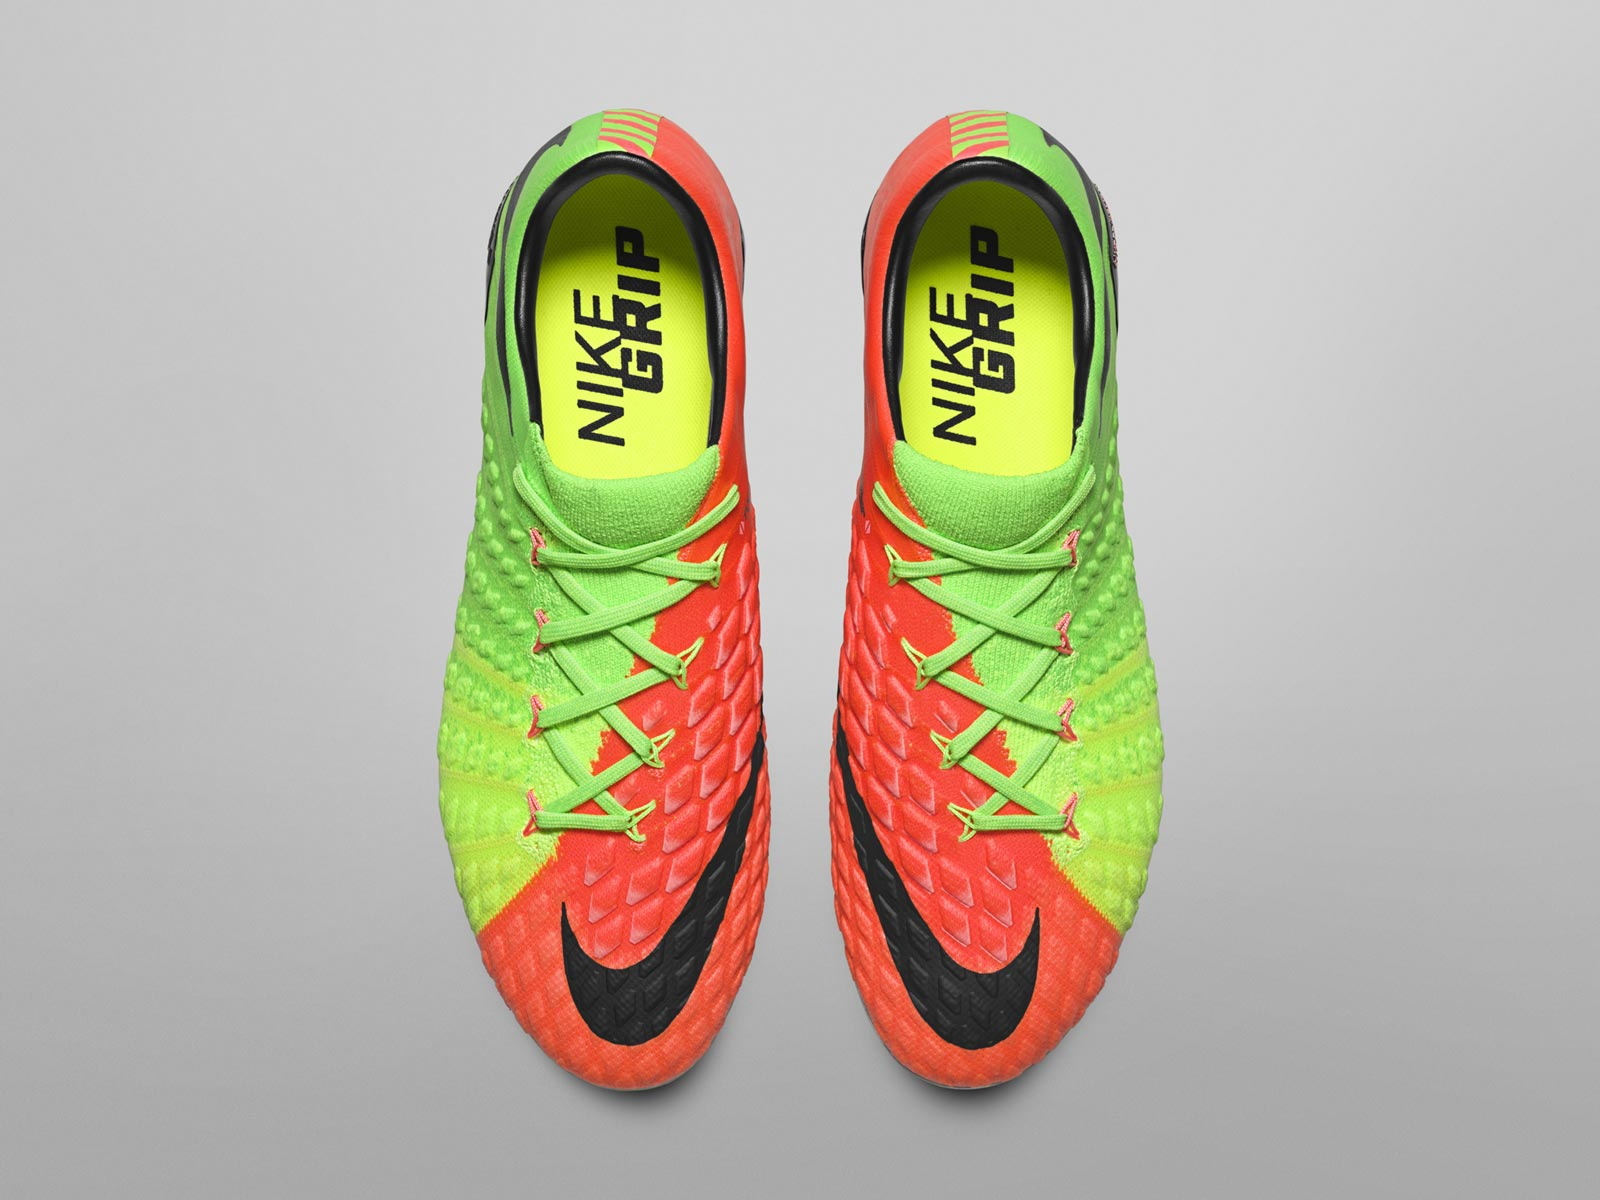 d71154427 Compared to the Nike Hypervenom Phinish, the all-new Nike Hypervenom  Phantom III low ...